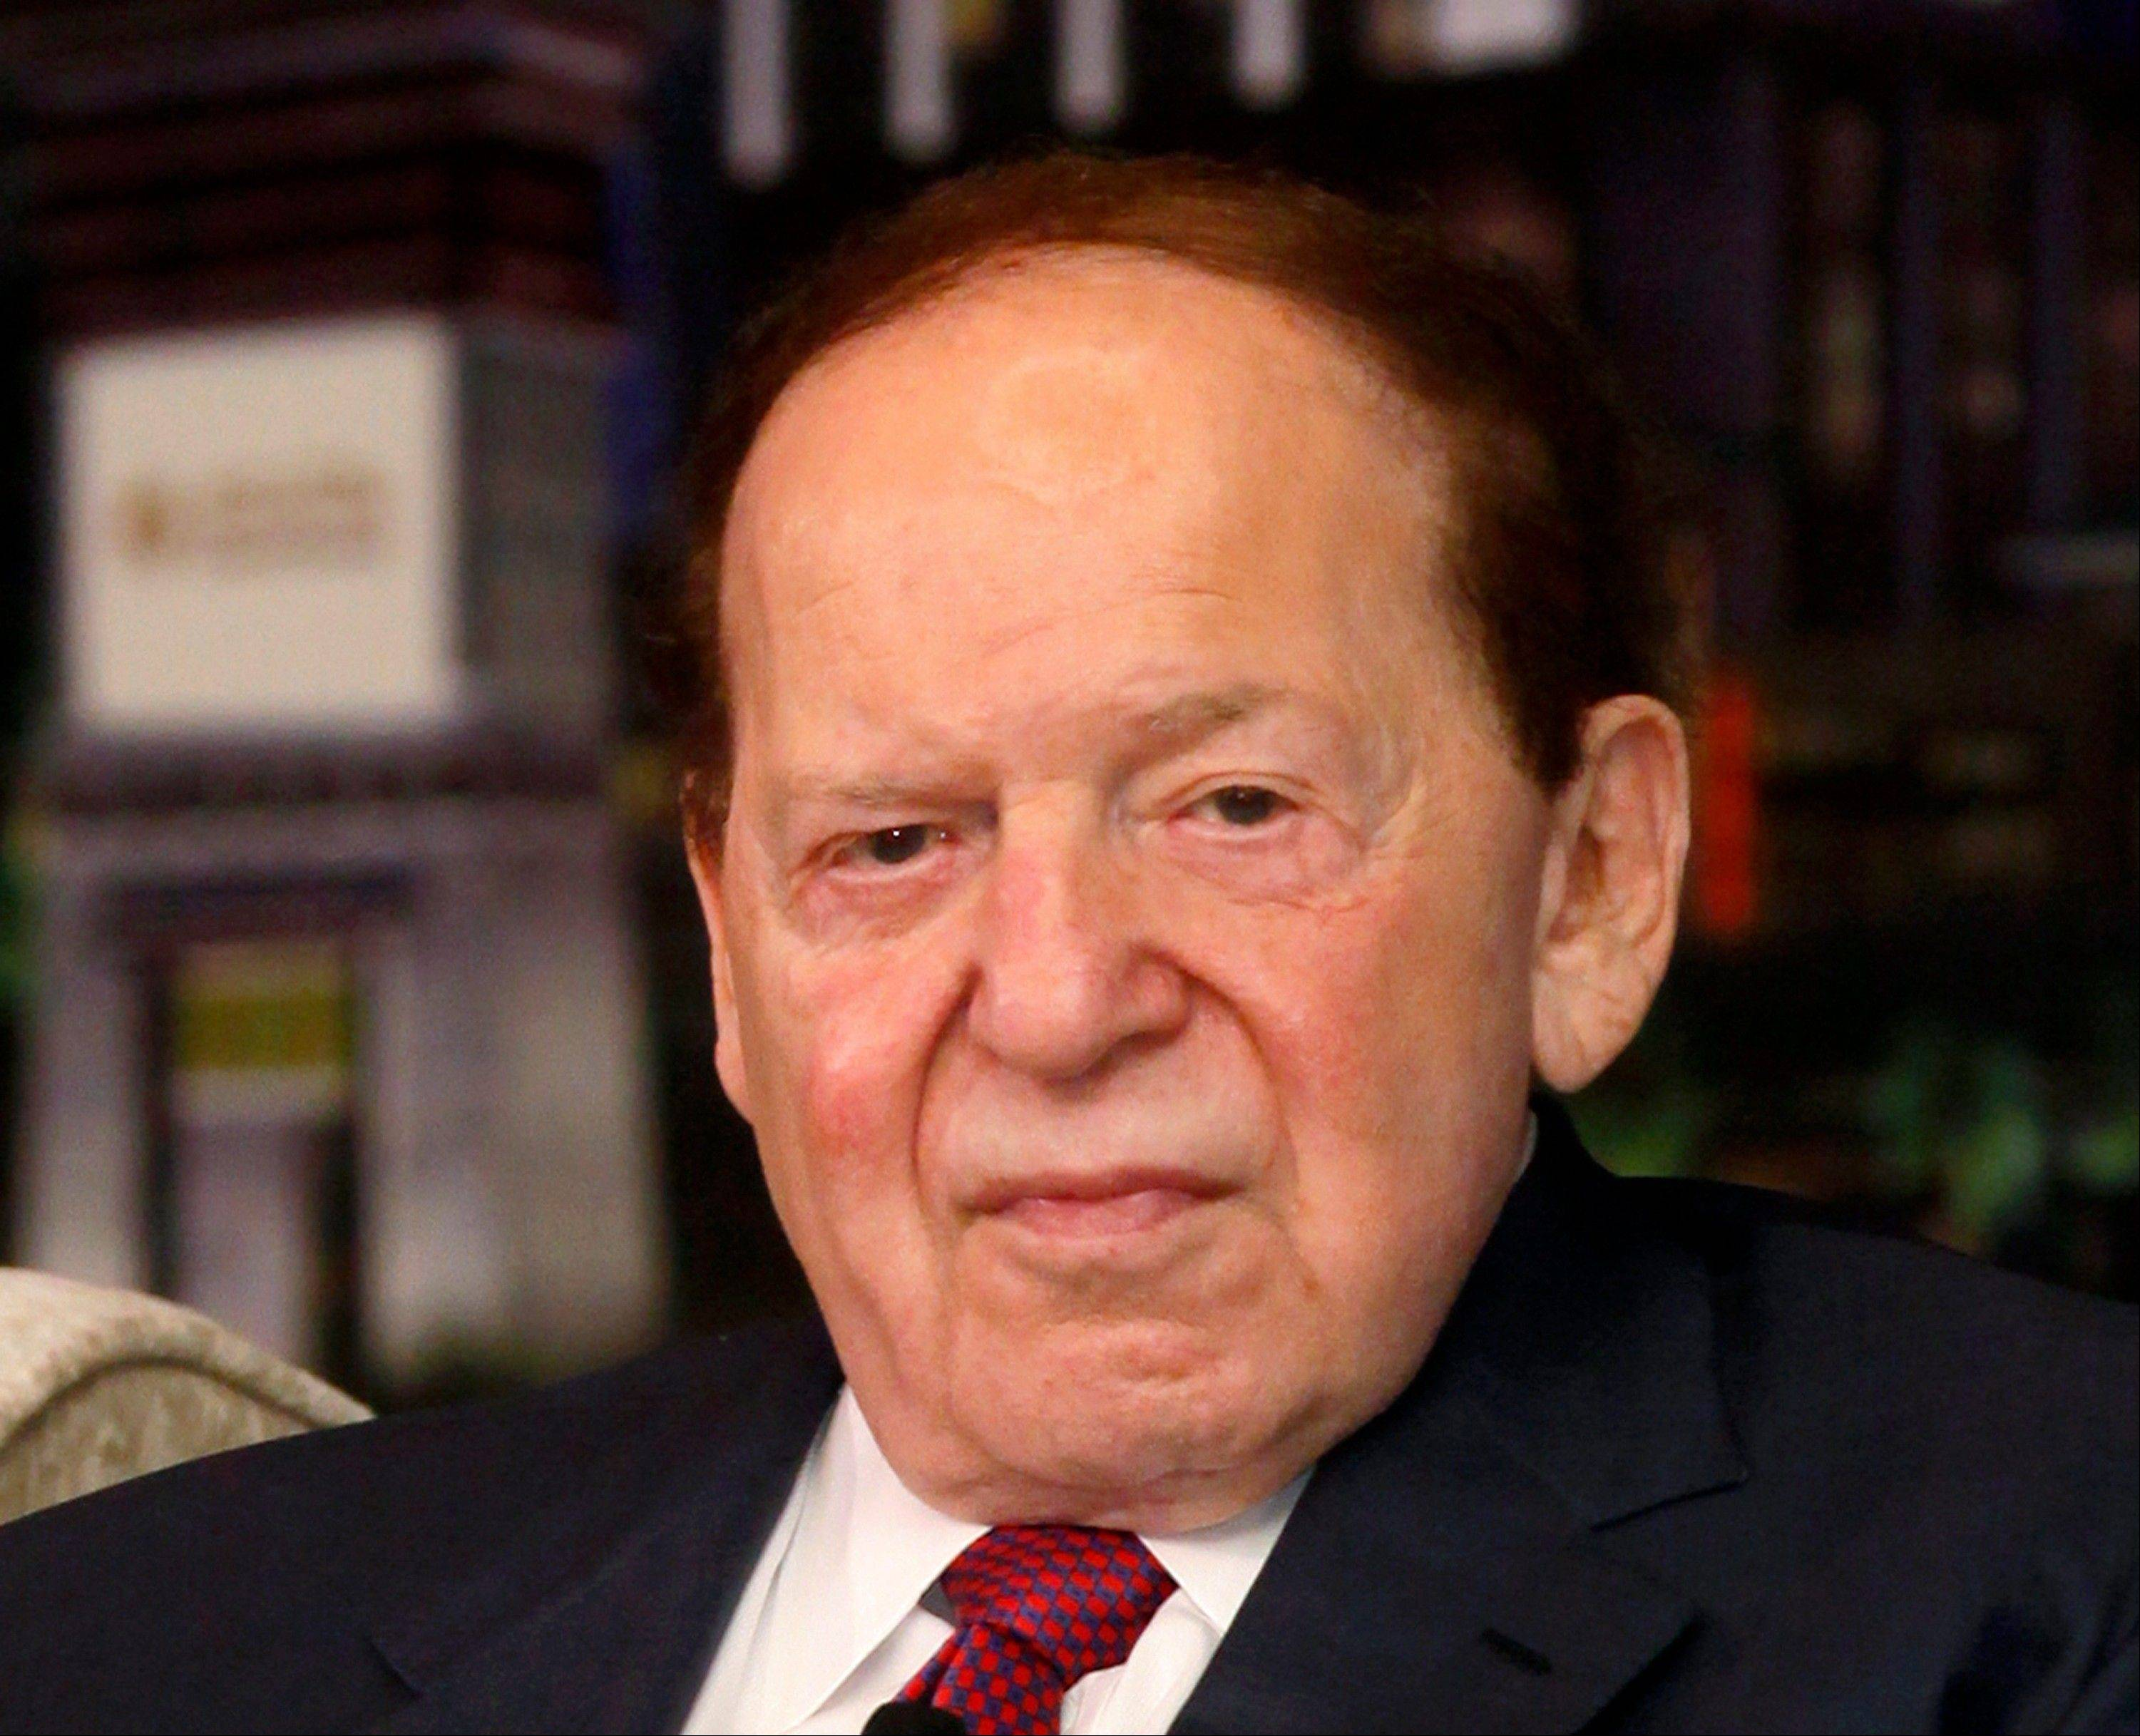 Las Vegas Sands Chairman and CEO Sheldon Adelson and his wife gave $10 million to a �super� political committee supporting losing GOP presidential candidate Mitt Romney. Adelson owns casinos in Las Vegas, Singapore and the Chinese territory of Macau.